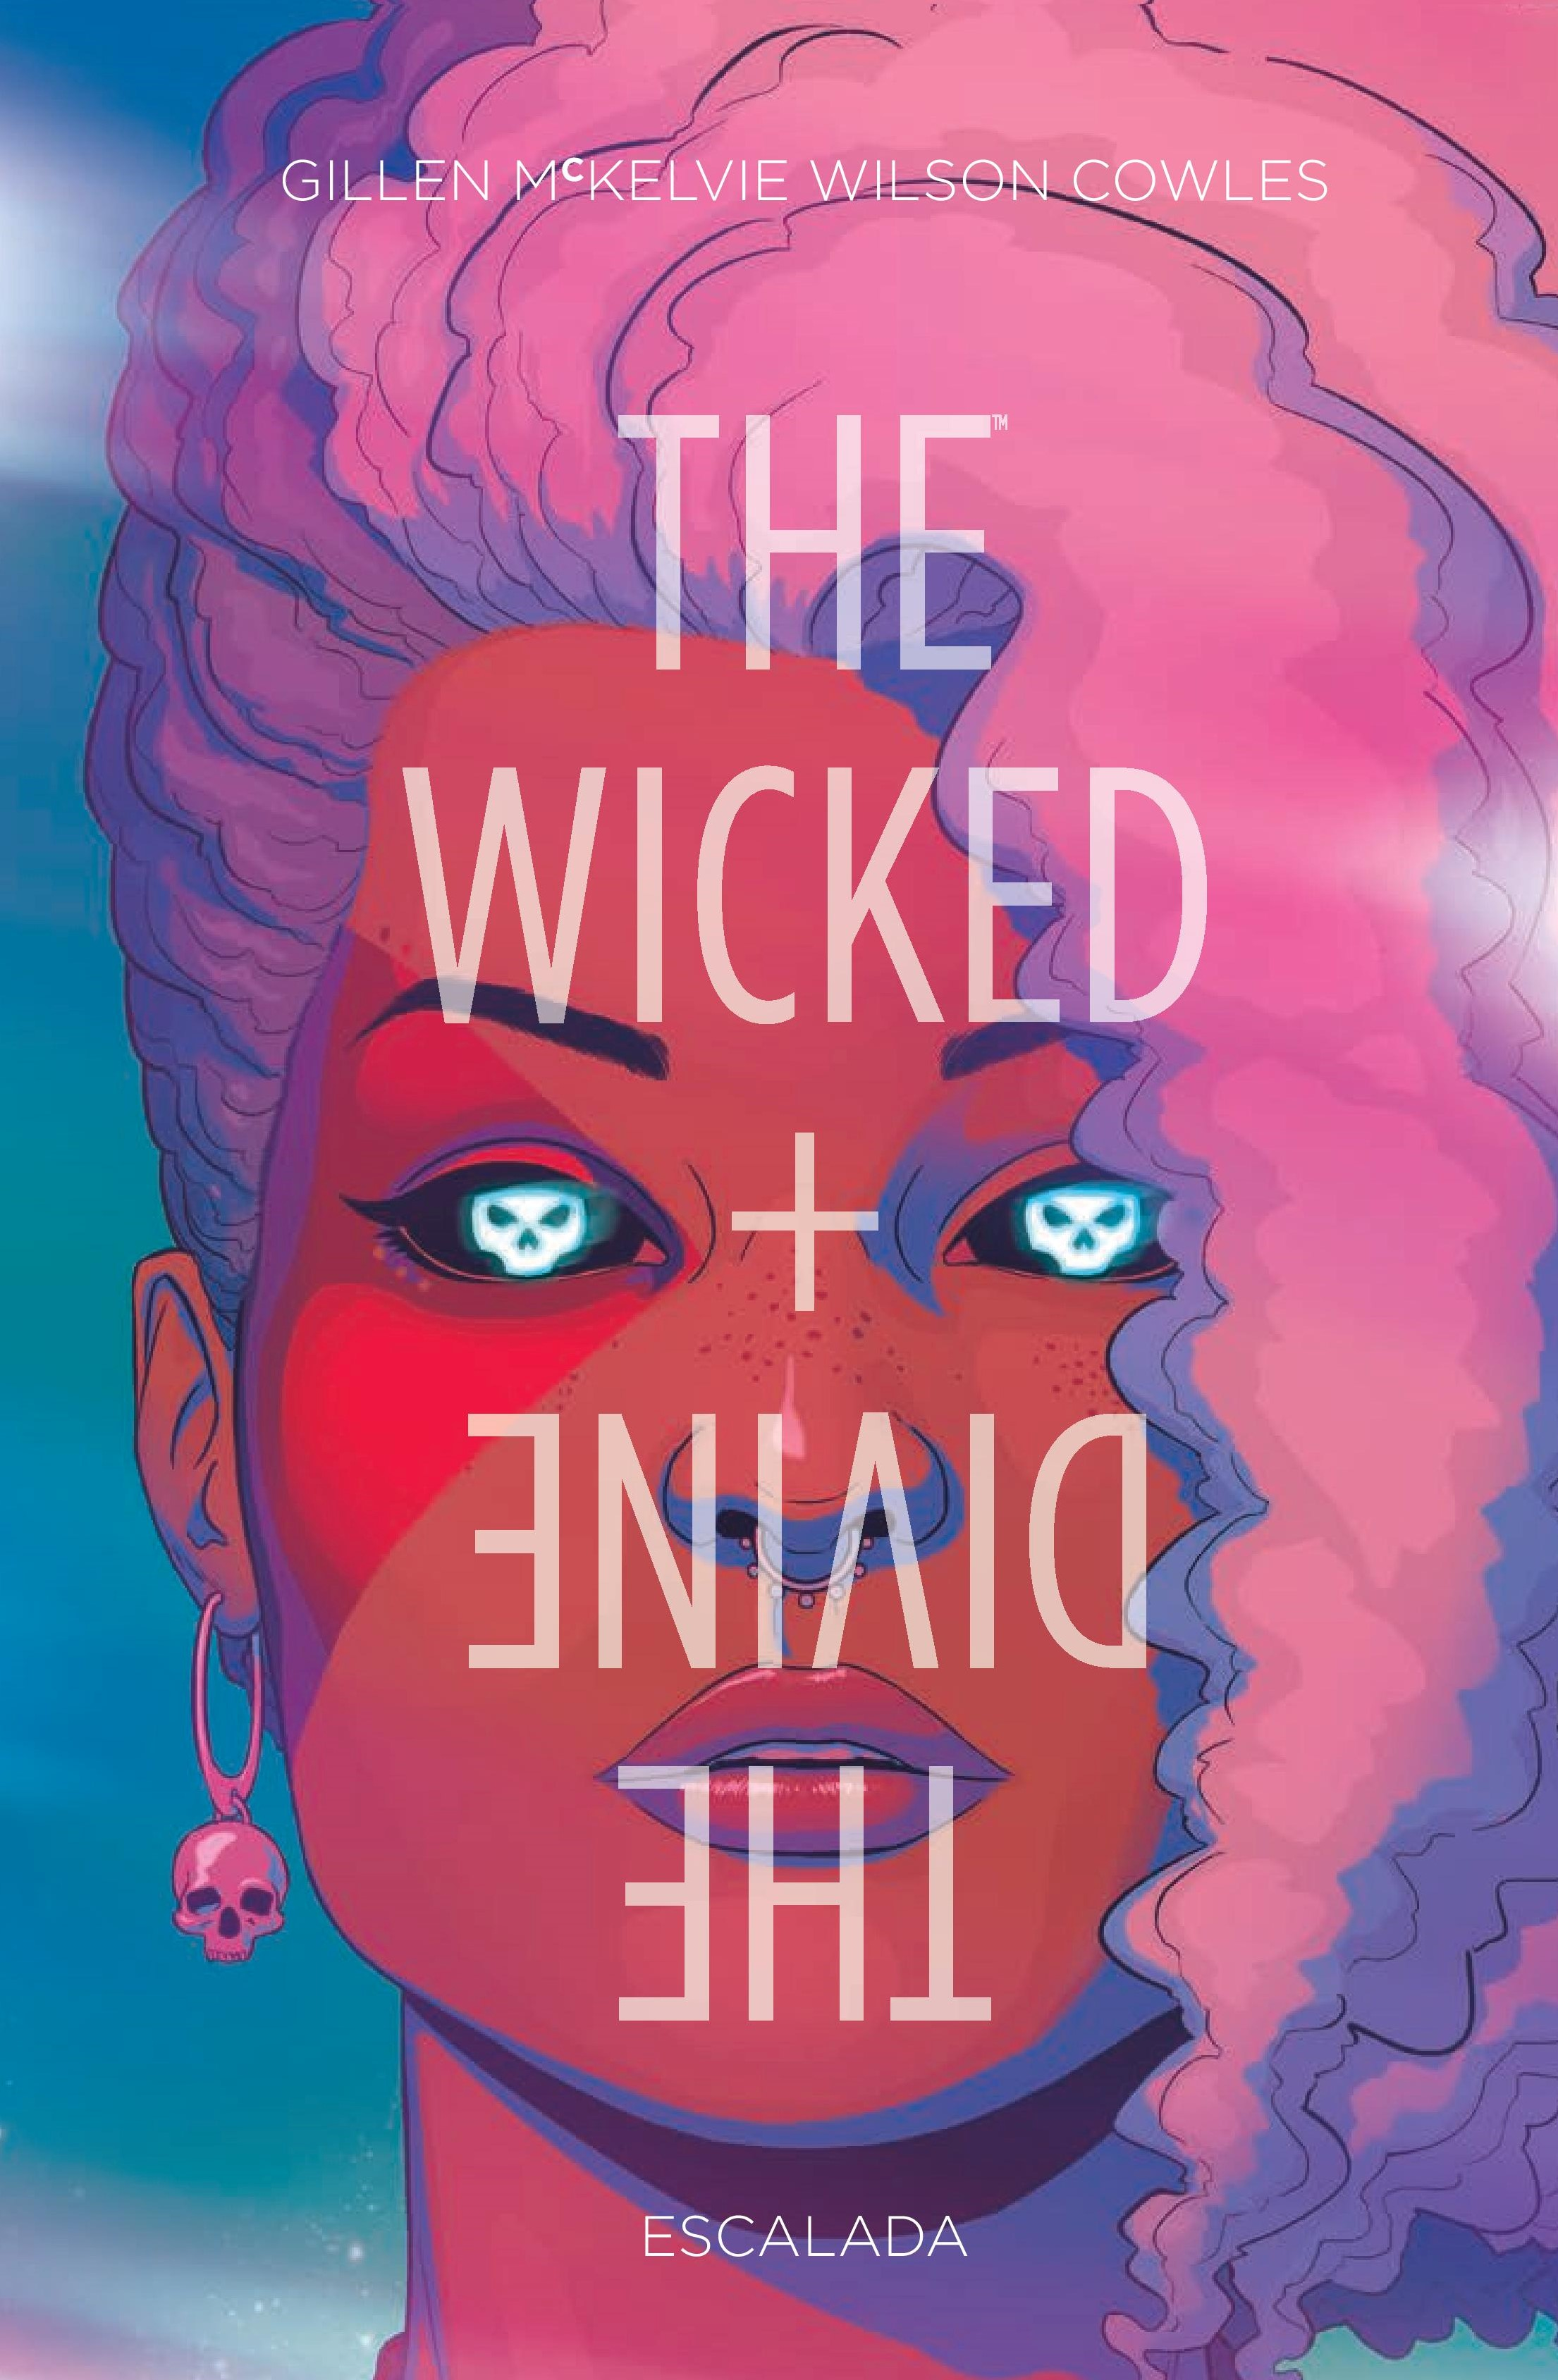 THE WICKED + THE DIVINE vol. 4: Escalada